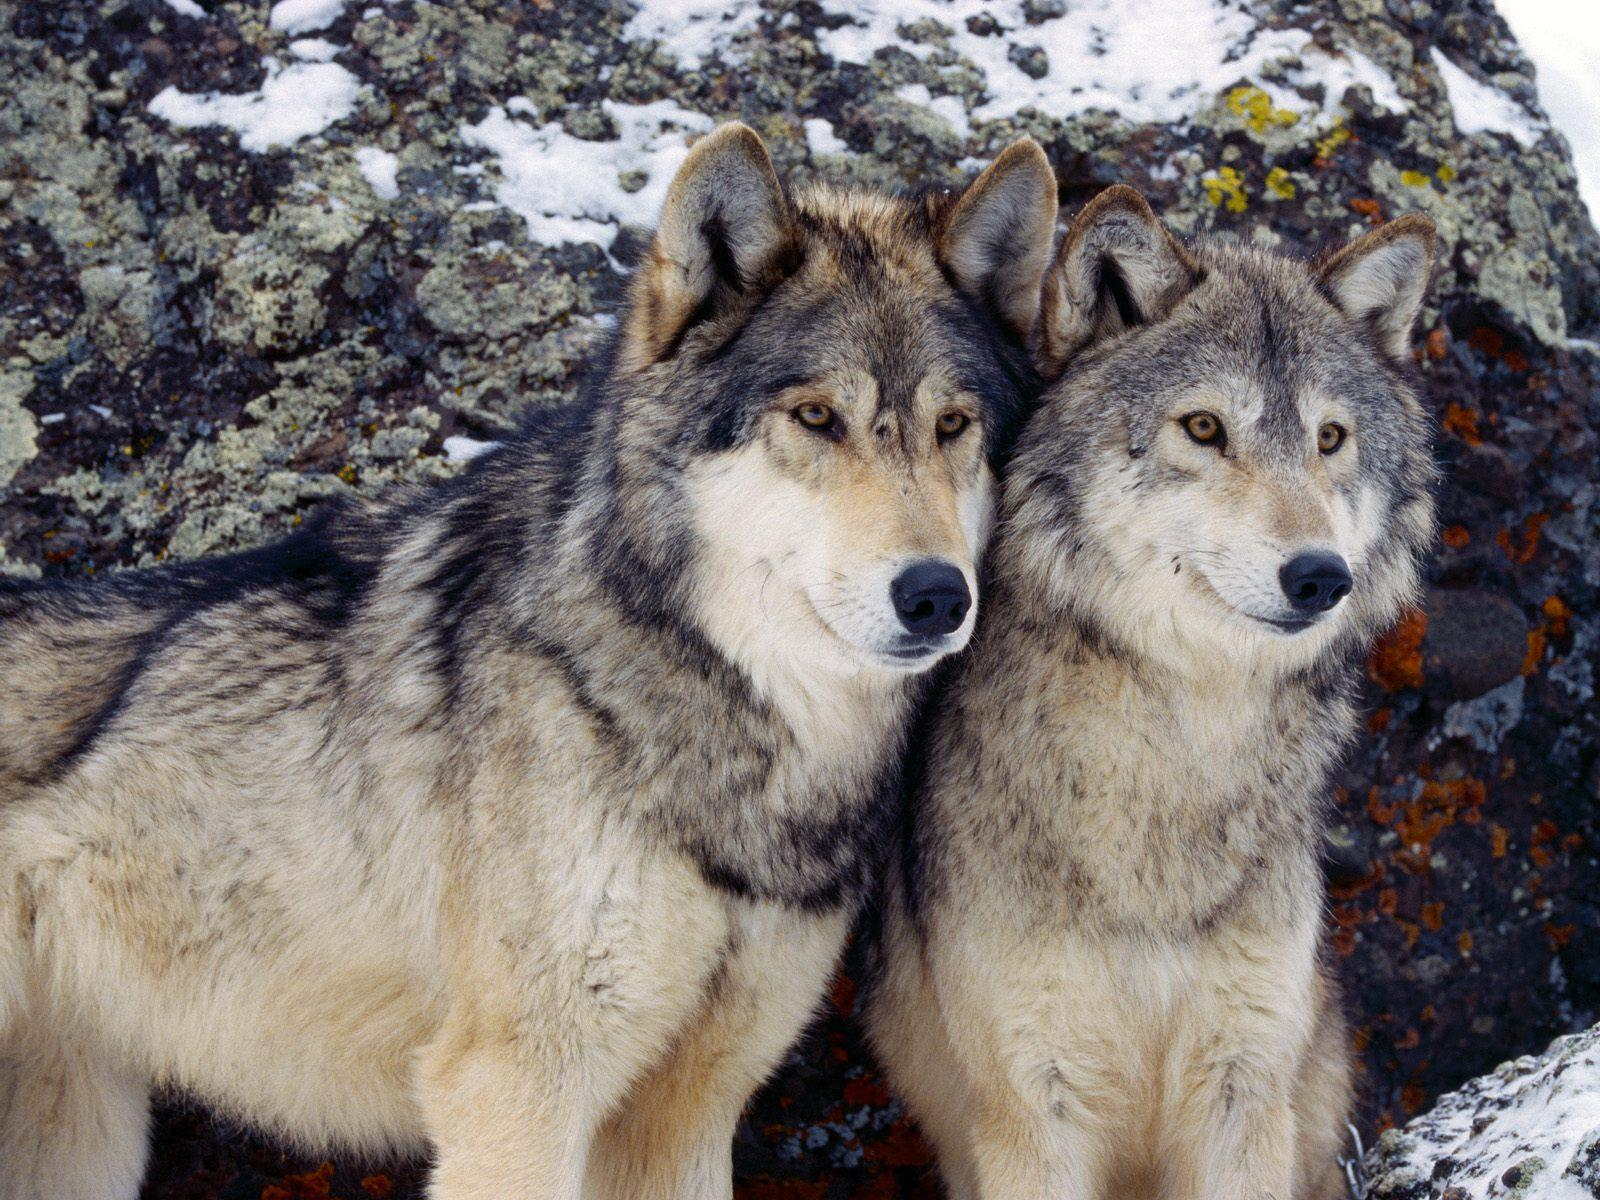 Court of Appeals Rules to Lift Federal Protections on Wyoming Wolves